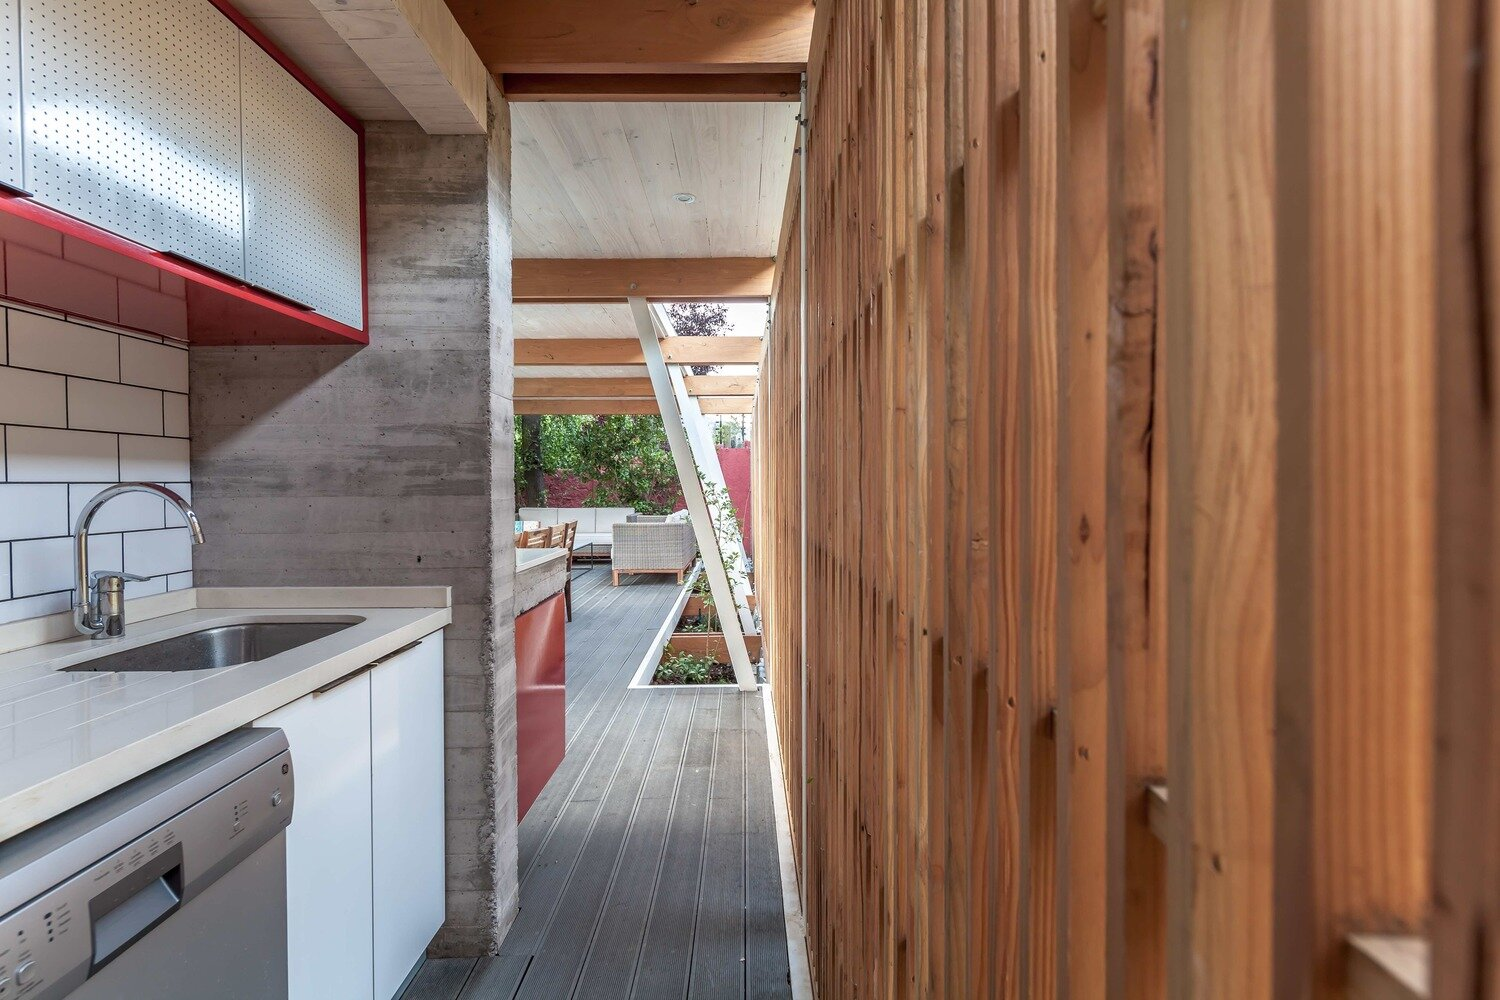 Pergola Pavilion - PAR Arquitectos - Chile - Kitchen - Humble Homes